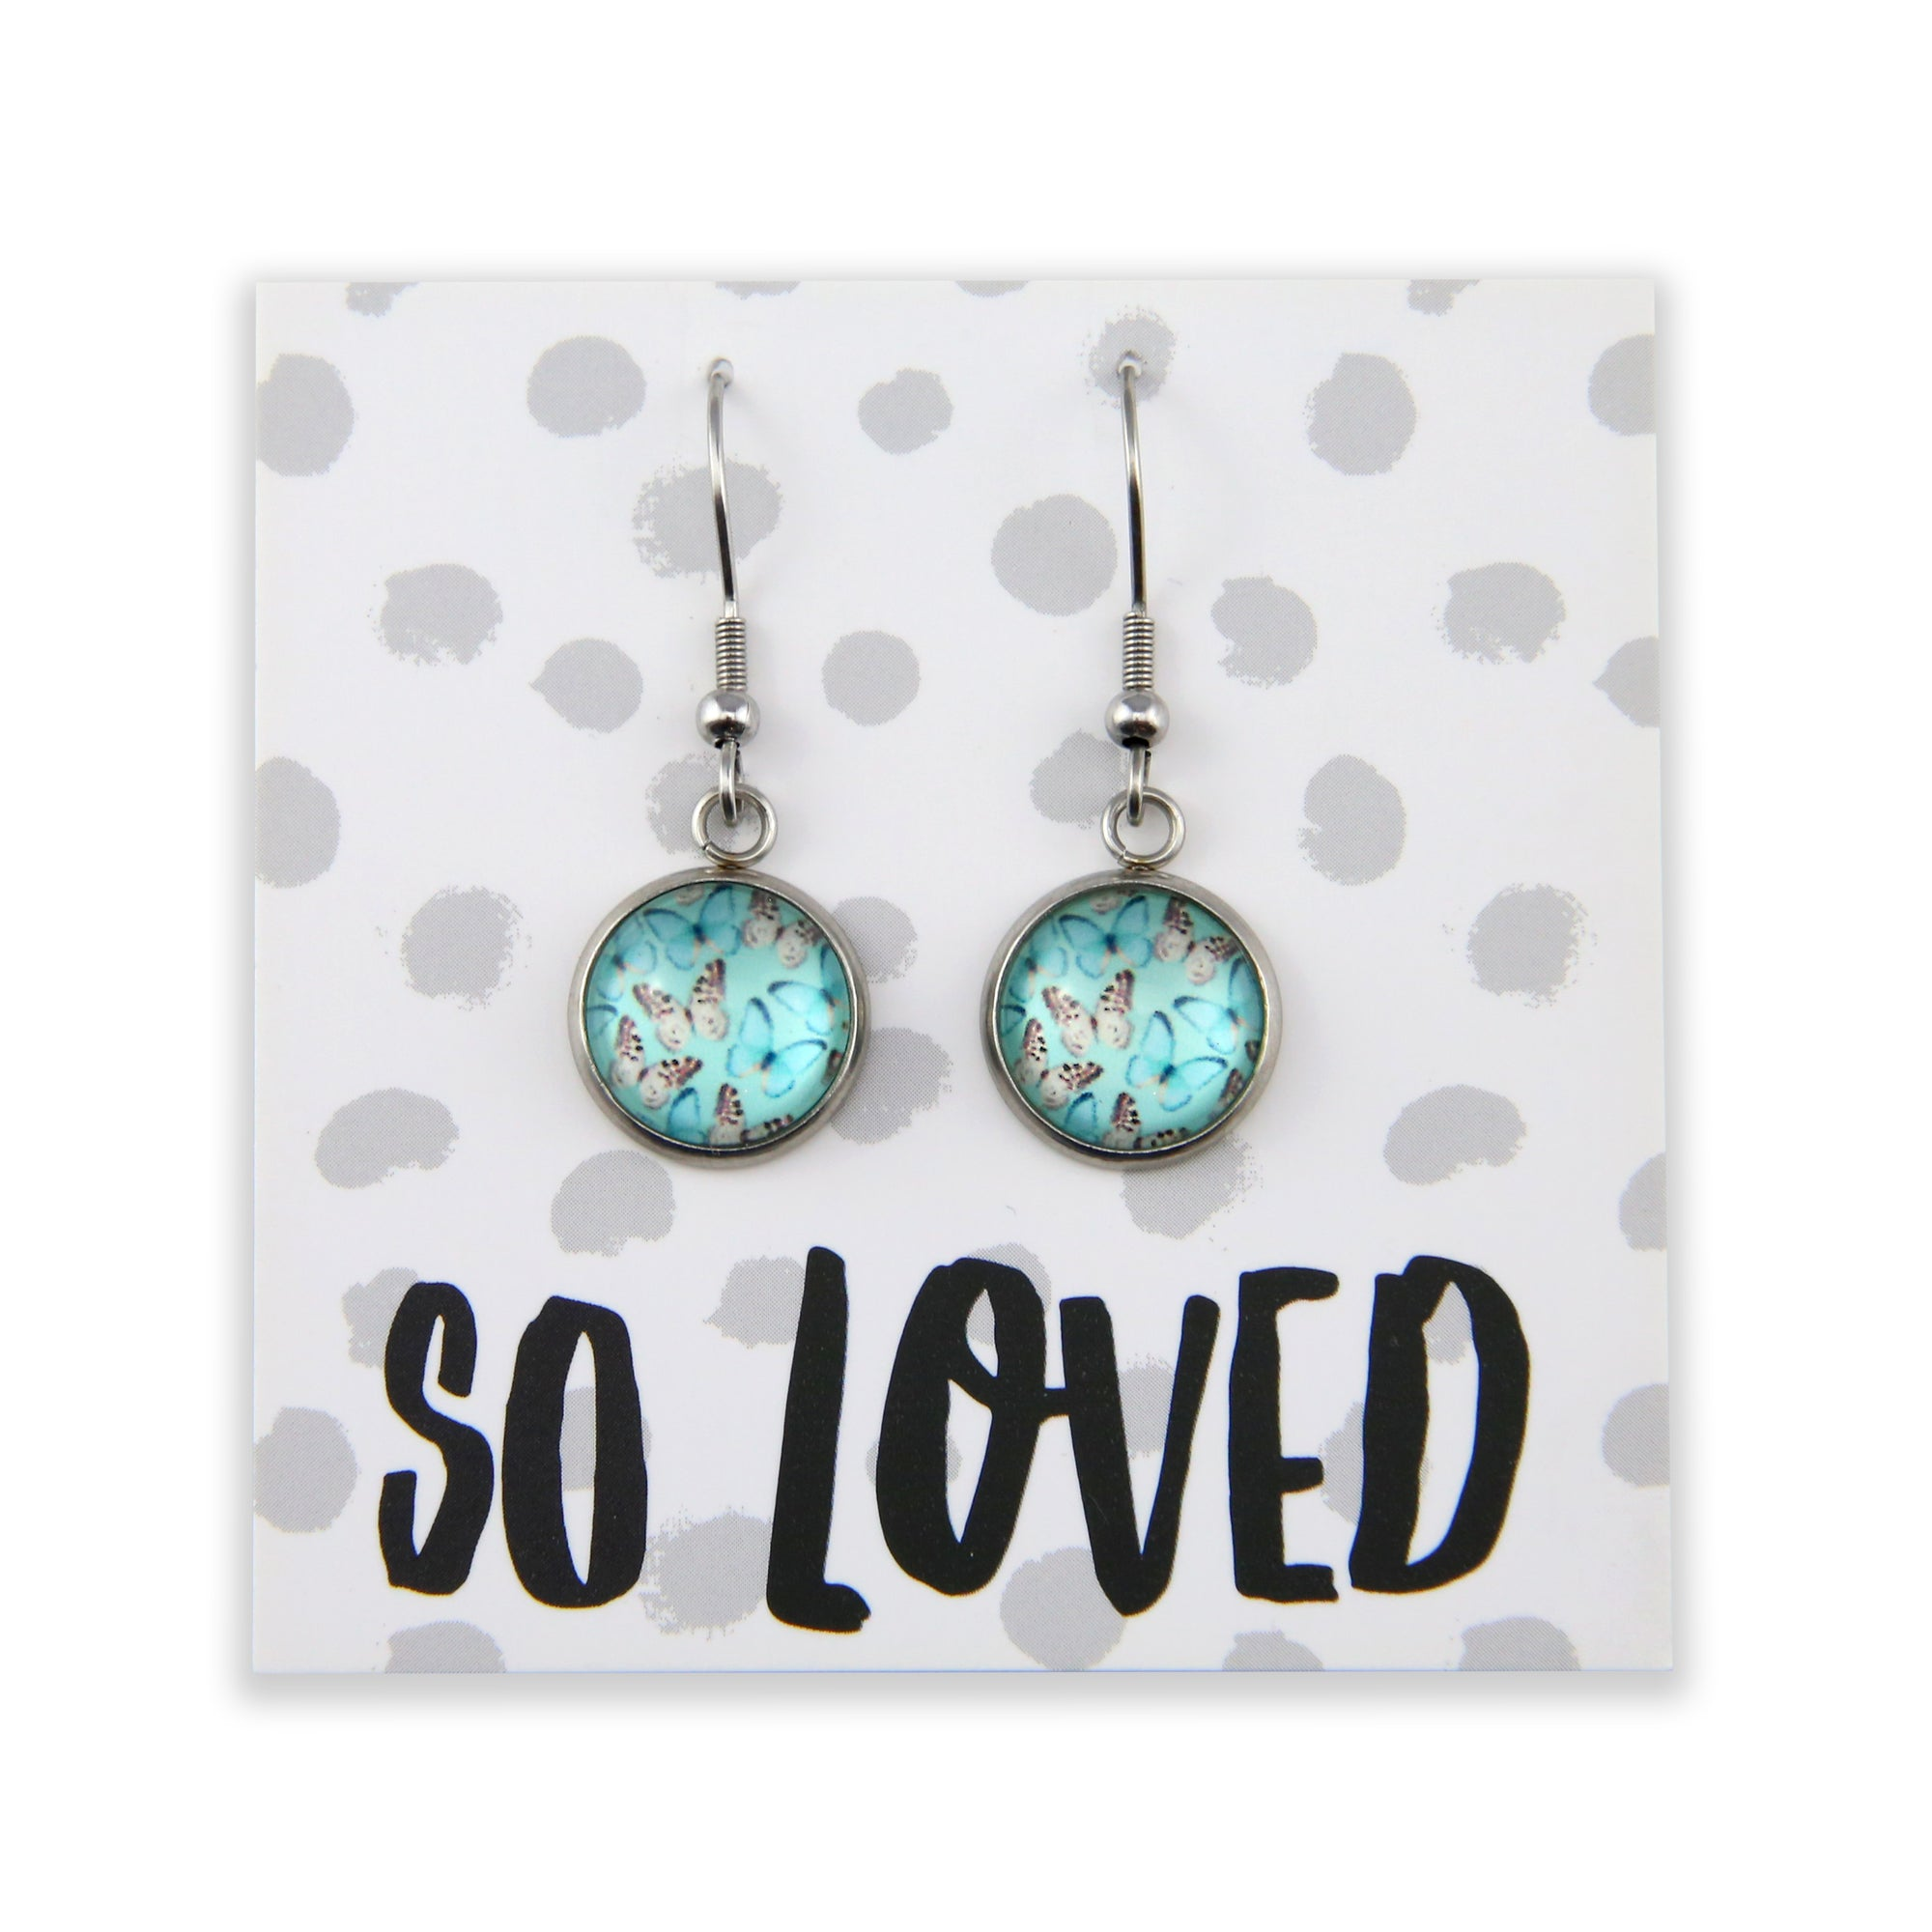 Heart & Soul Collection - So Loved - Stainless Steel Vintage Silver Dangle Earrings - Butterfly Flutter (9611)